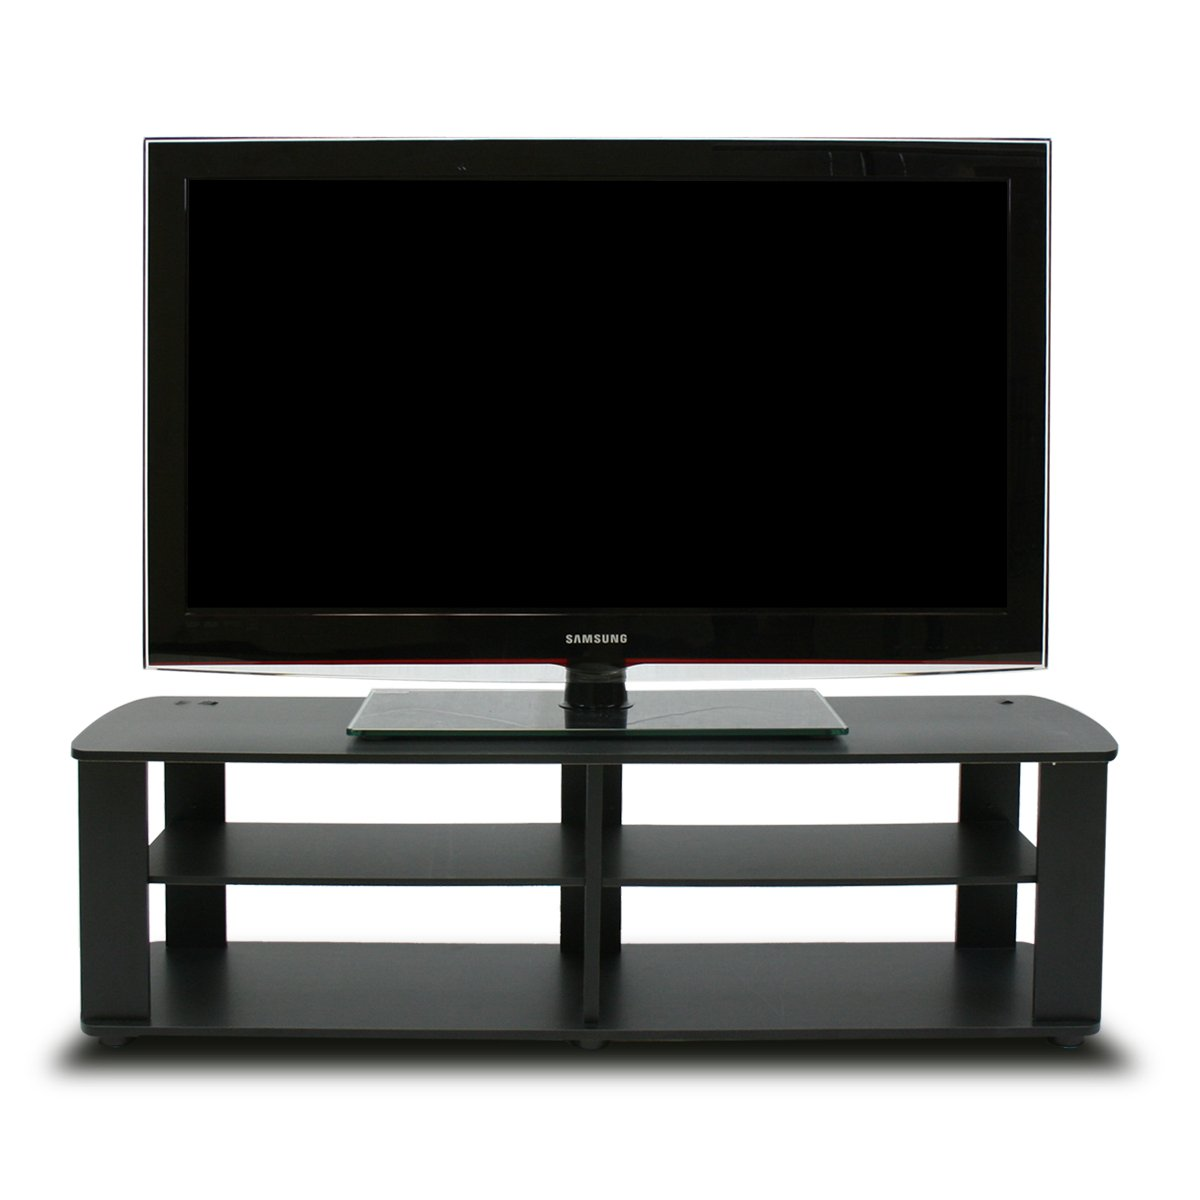 Black tv stand entertainment center living room furniture home decor shelf new ebay Home furniture tv stands